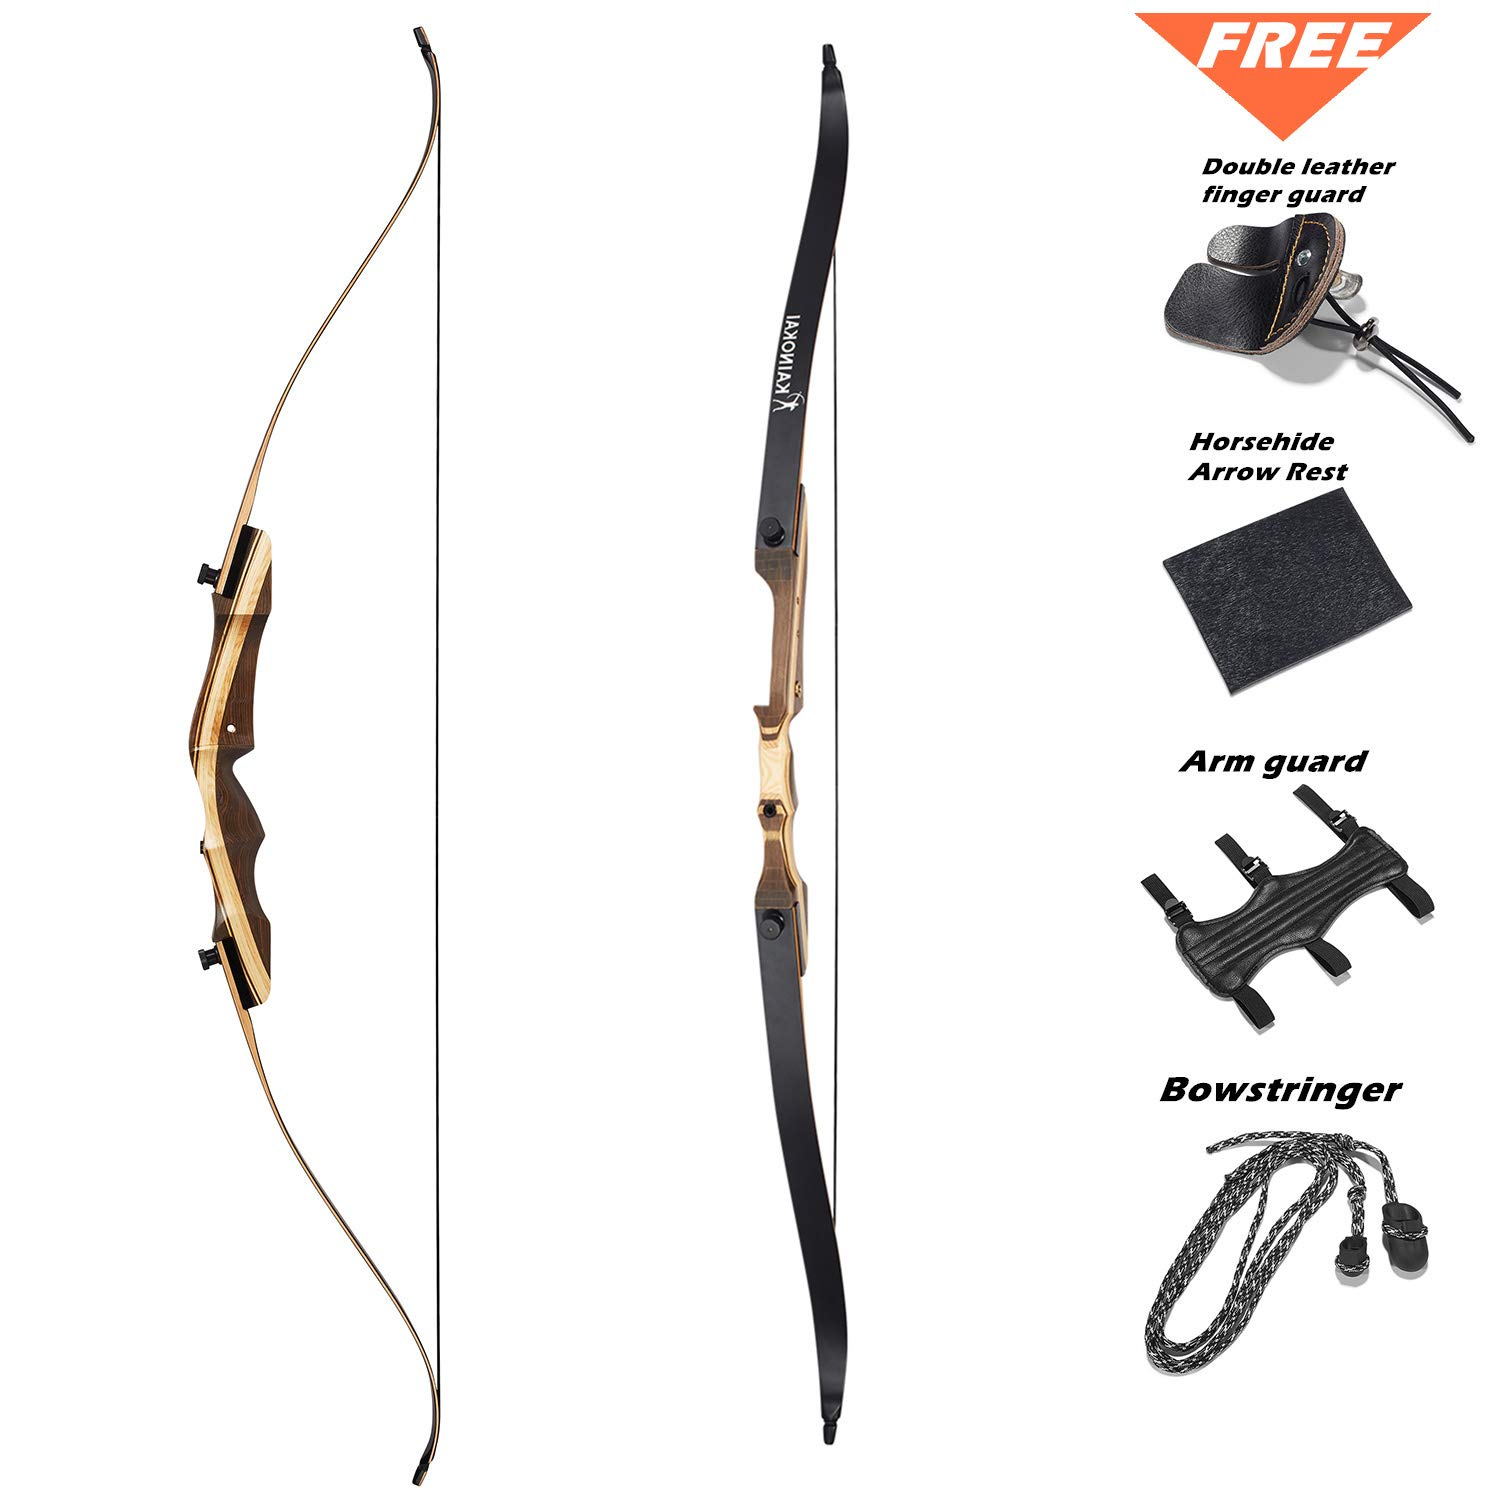 KAINOKAI 62'' Takedown Recurve Bow,Right & Left Hand,Hunting Recurve Archery Bow for Teens and Adults,15-60 lbs (Left Hand, 15lb) by KAINOKAI